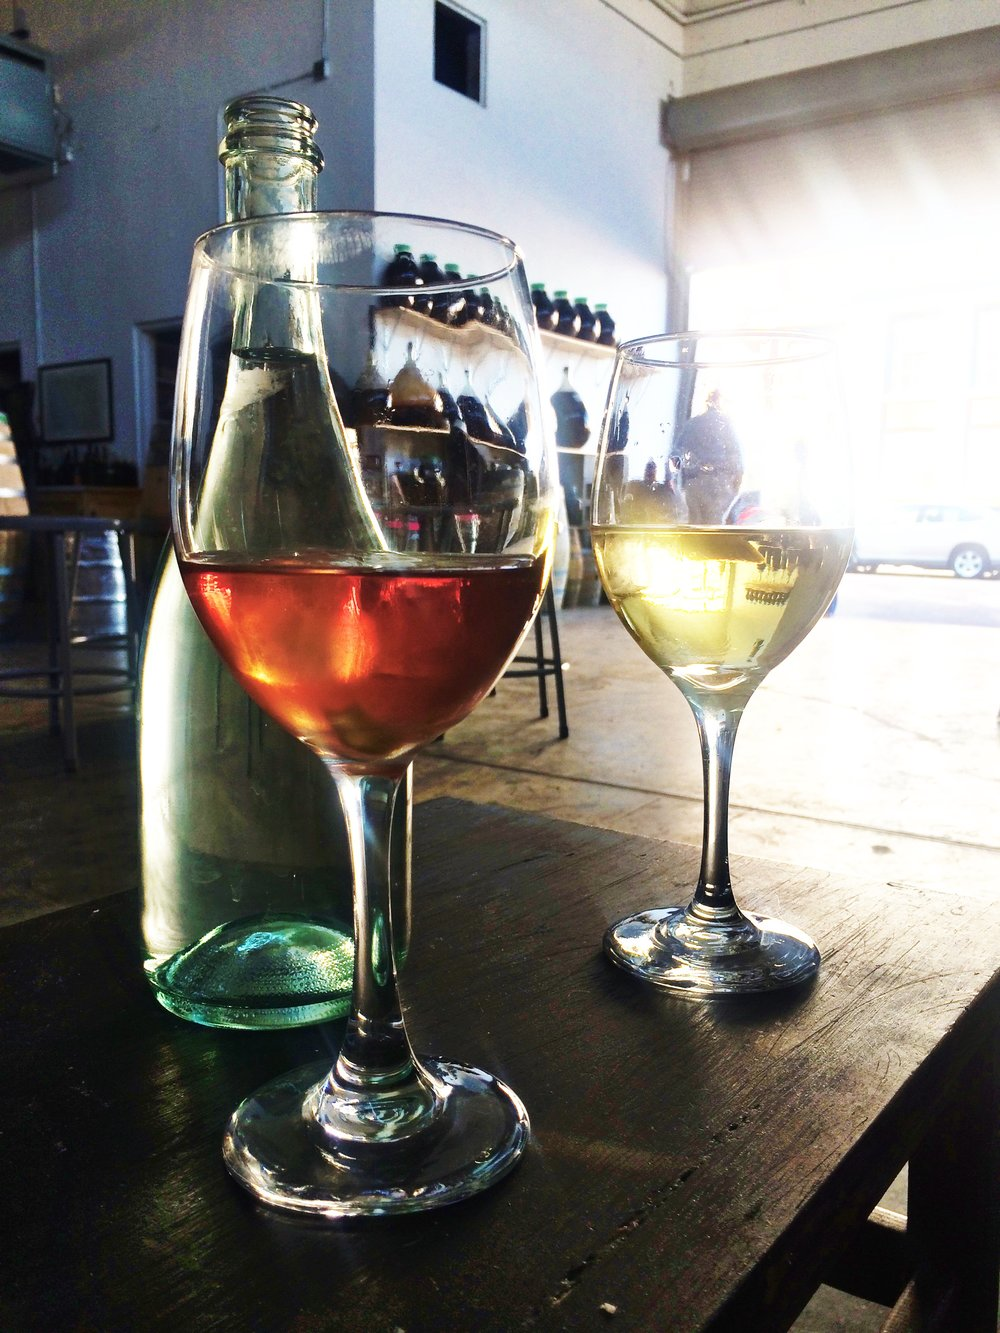 sutton cellars wine and vermouth